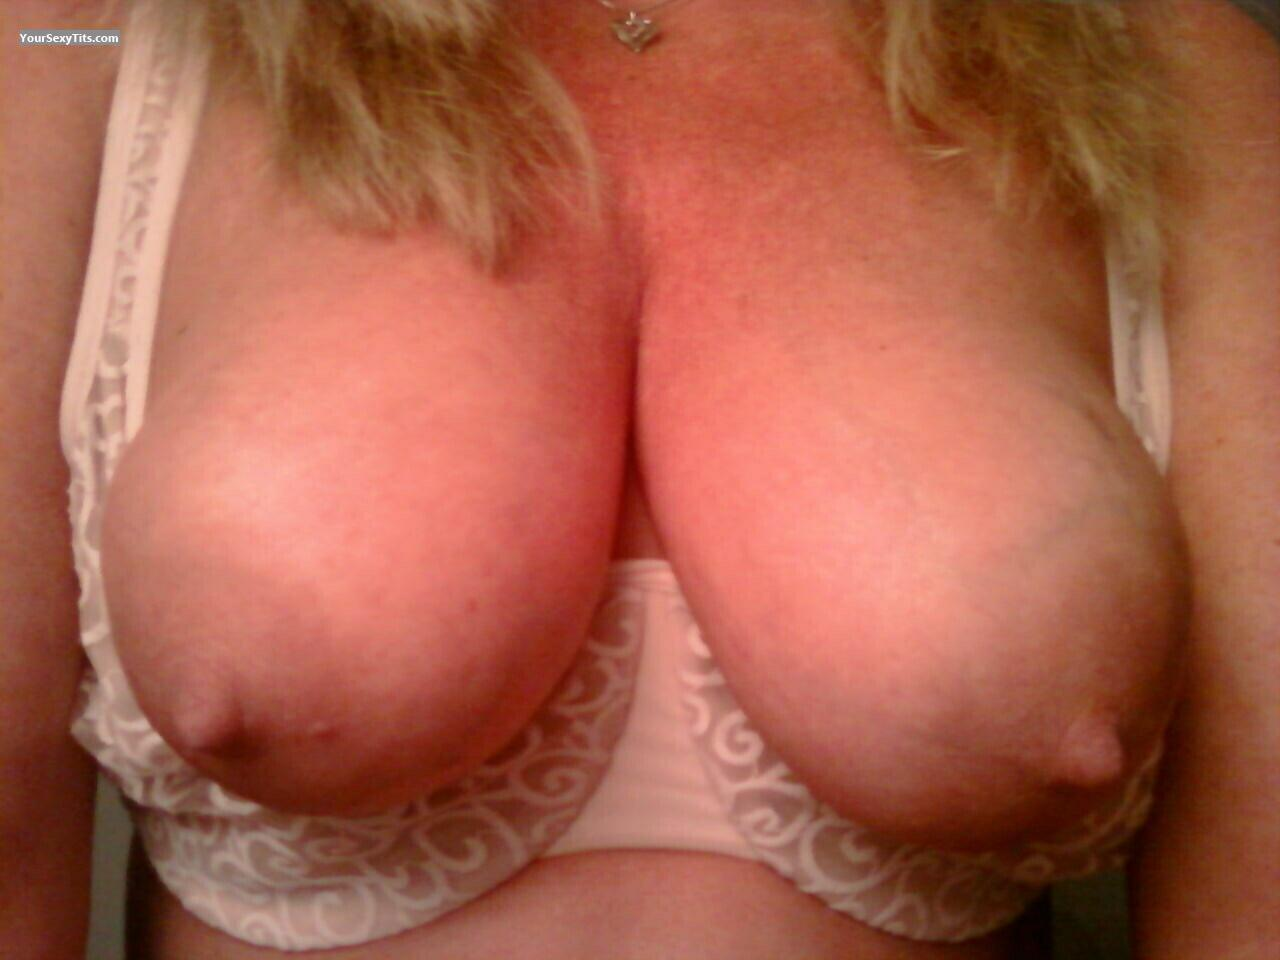 Tit Flash: My Medium Tits (Selfie) - Babygirl from United States